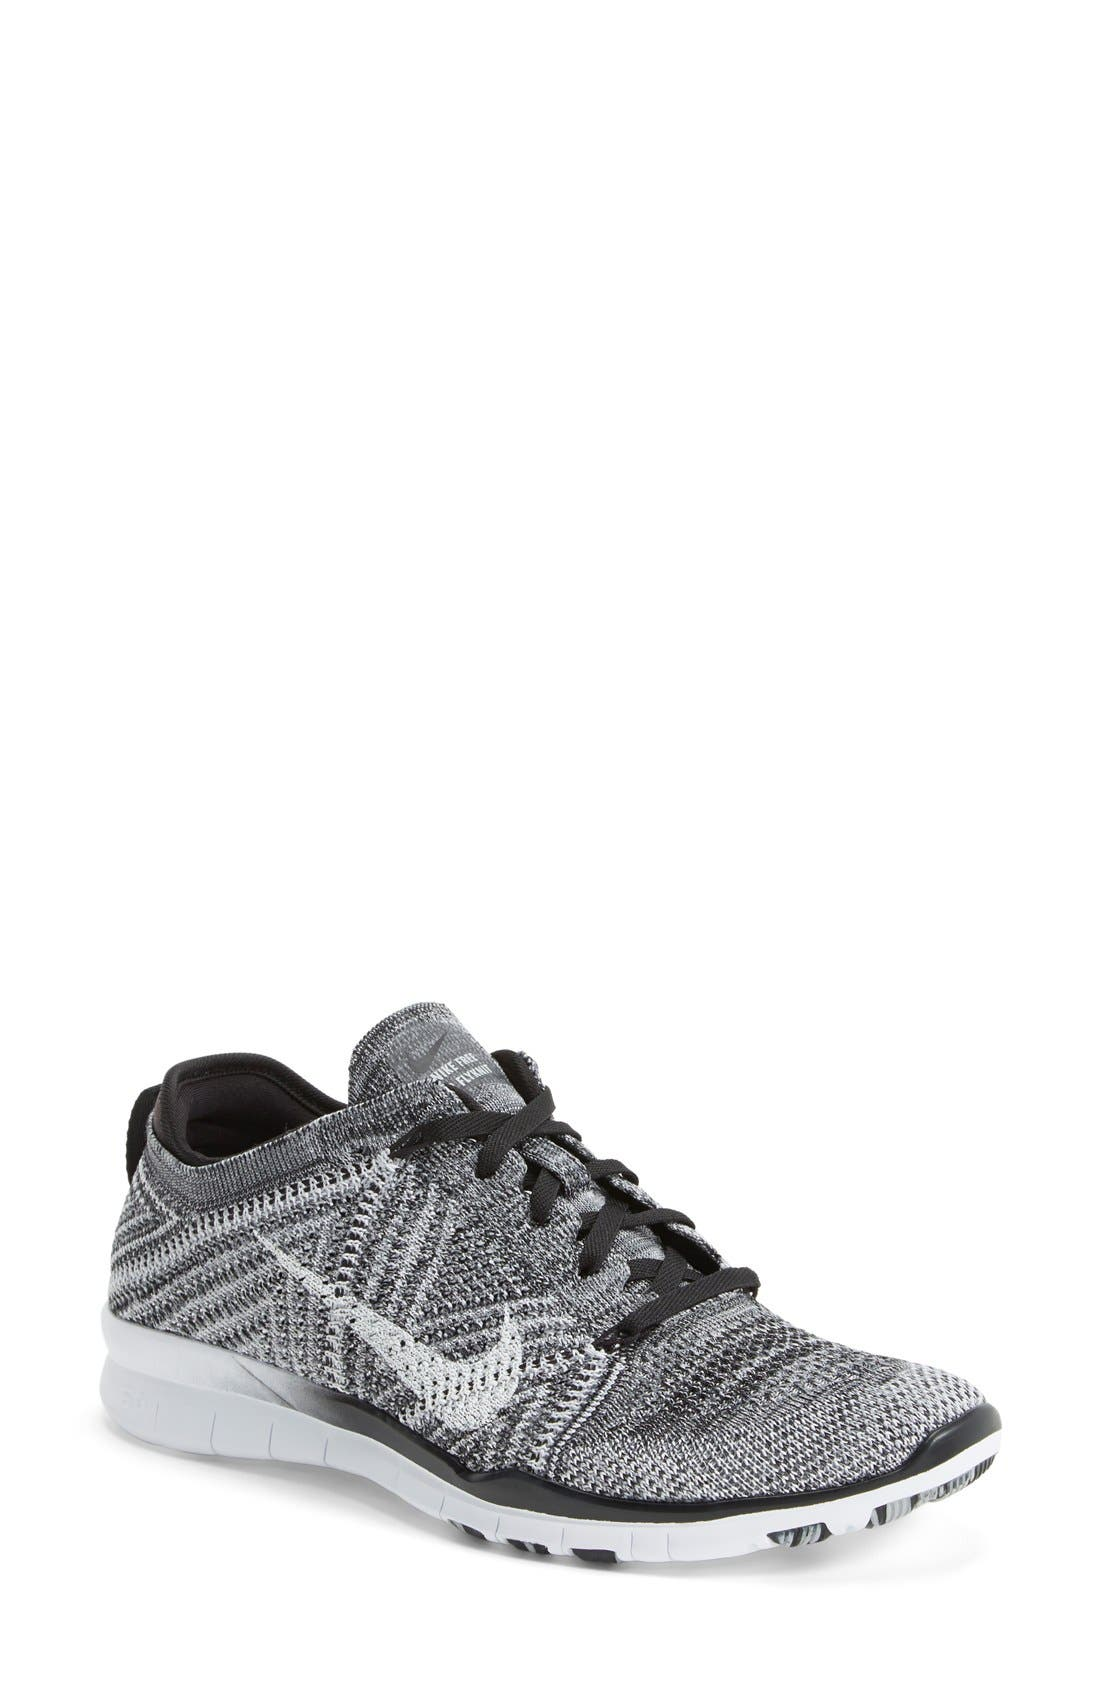 'Free Flyknit 5.0 TR' Training Shoe,                         Main,                         color, Black/ Grey/ White